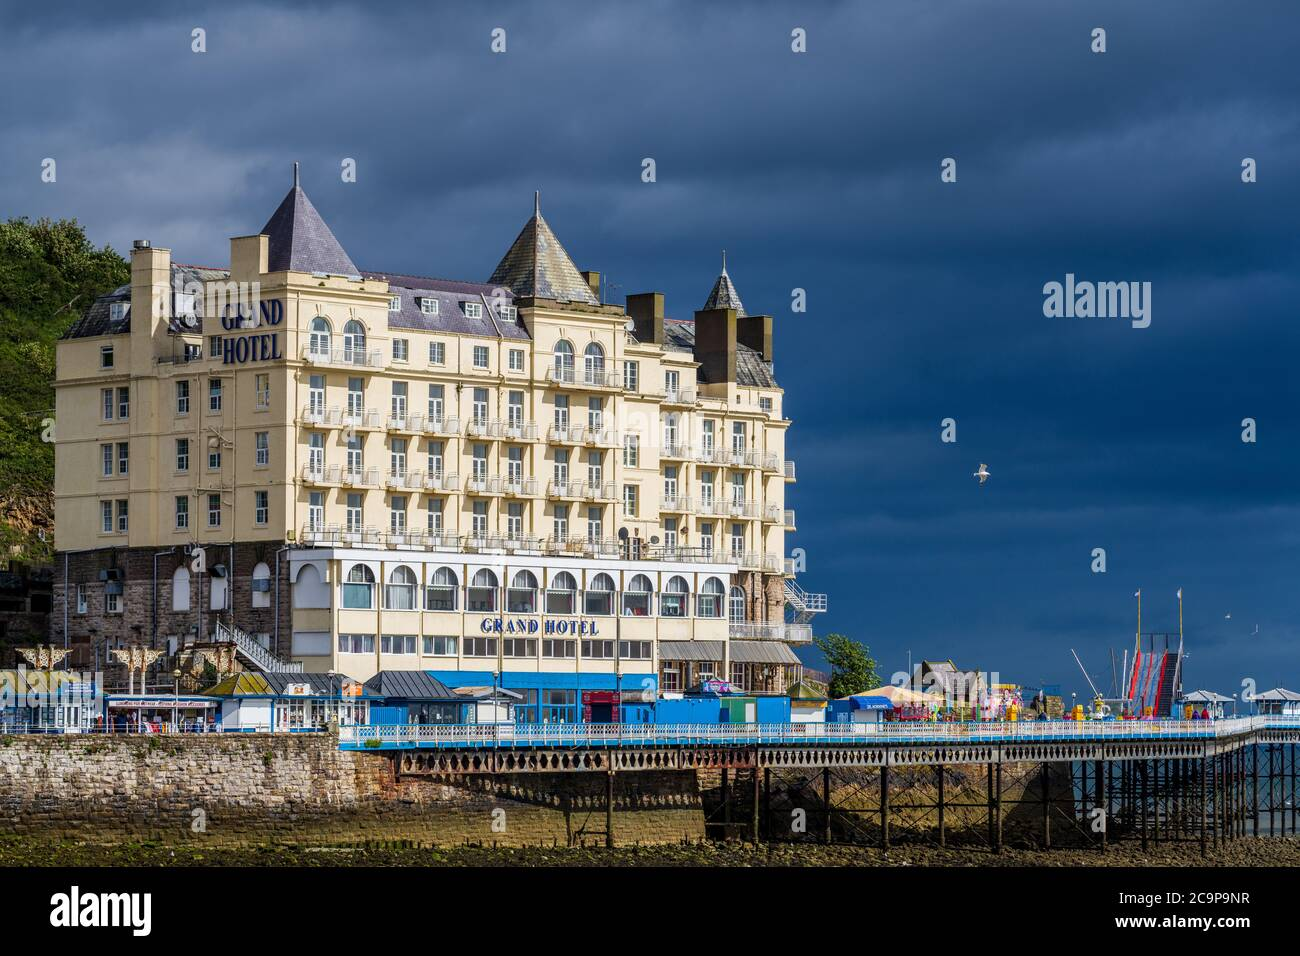 The Grand Hotel Llandudno North Wales Dating From 1855 But Substantially Reconstructed In 1901 162 Rooms Hotel Architecture Stock Photo Alamy